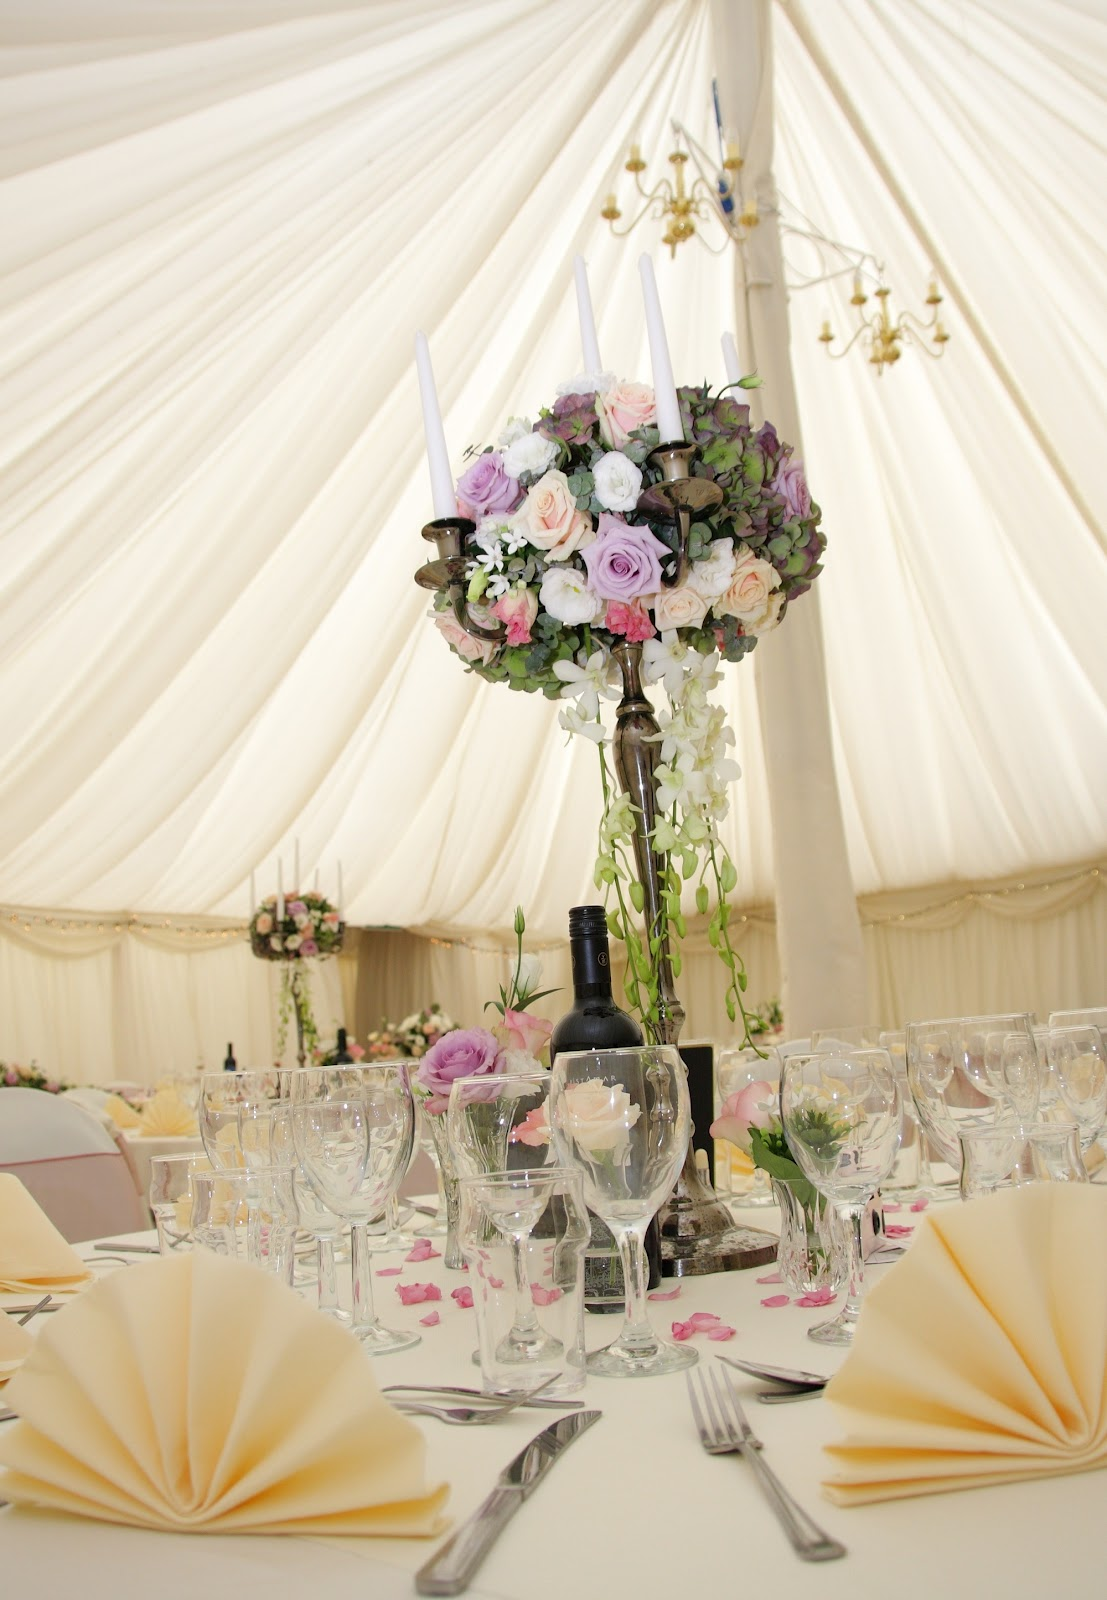 Helen Jane Floristry: Flowers for your Reception